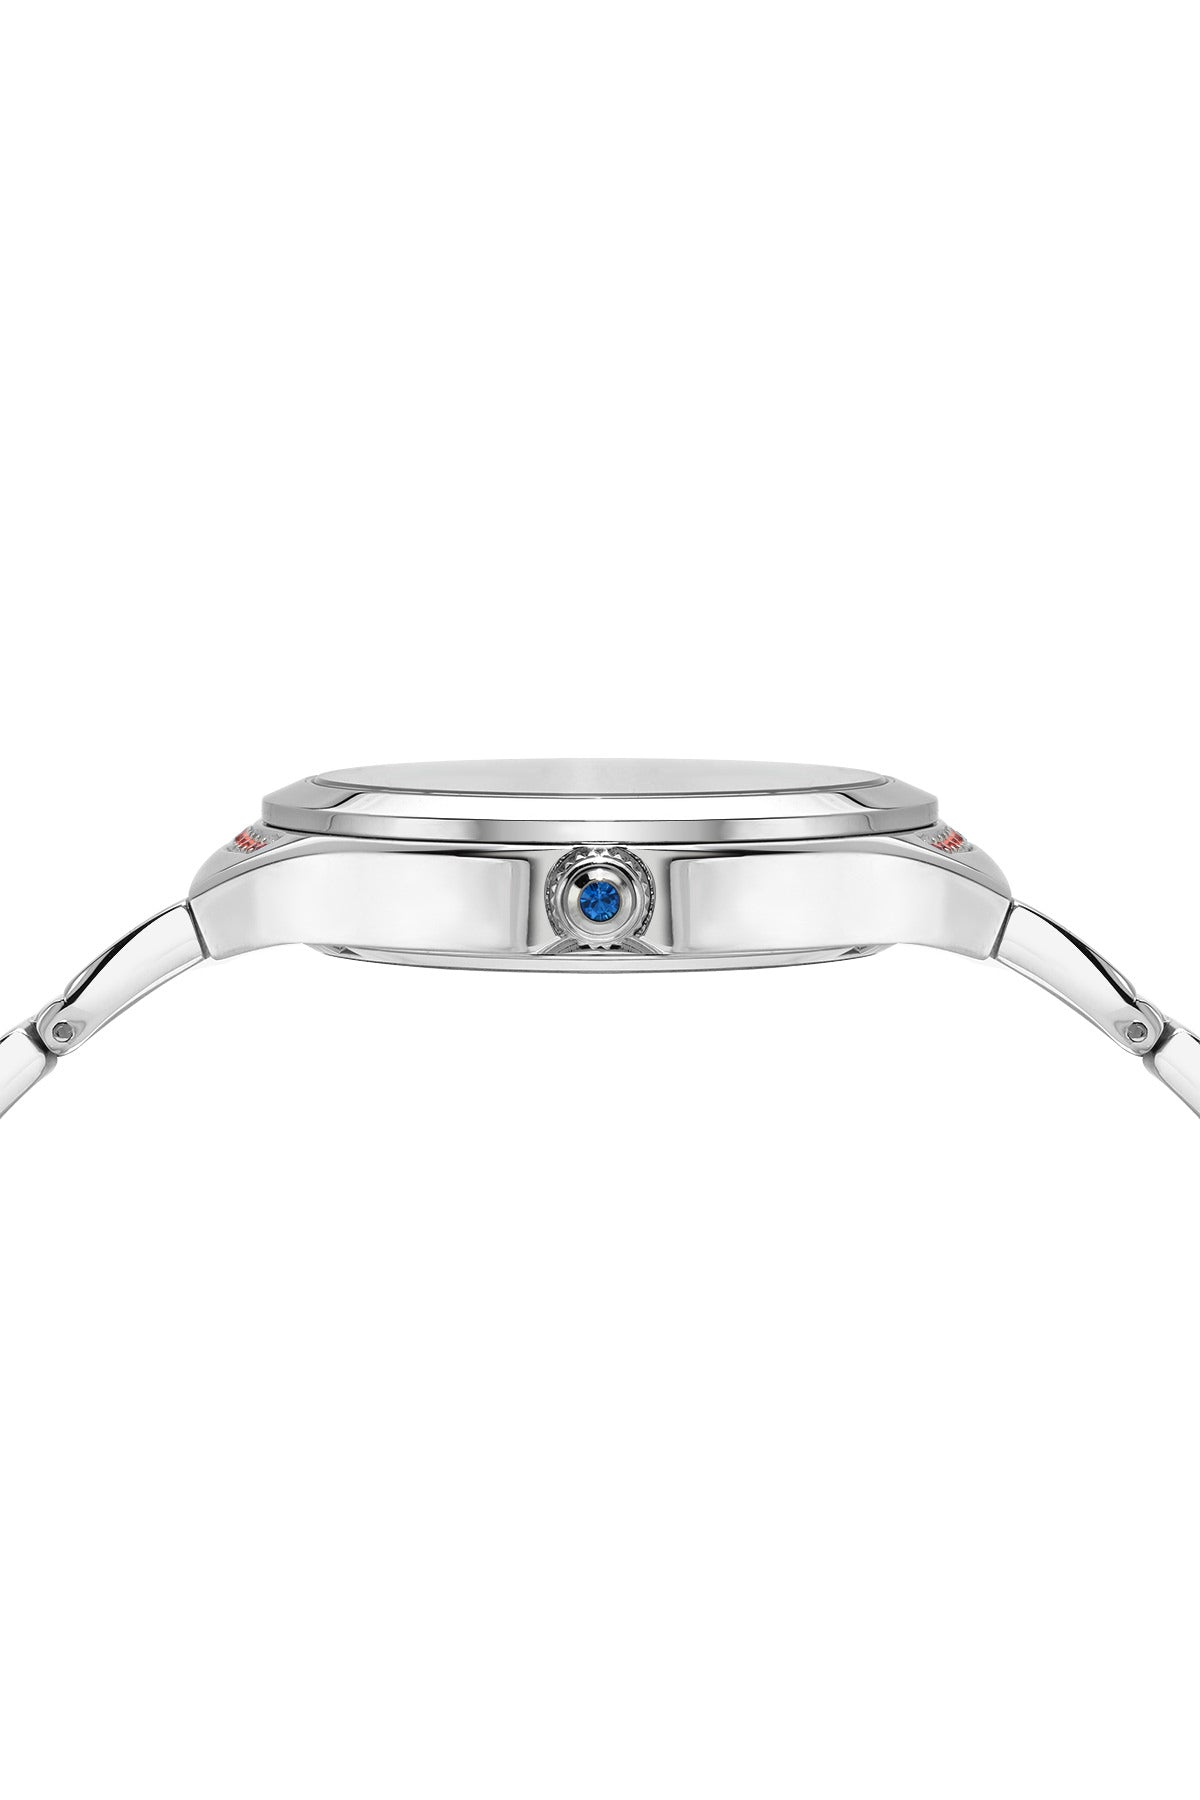 Porsmao Bleu Carmen luxury women's stainless steel watch, silver, red 991BCAS